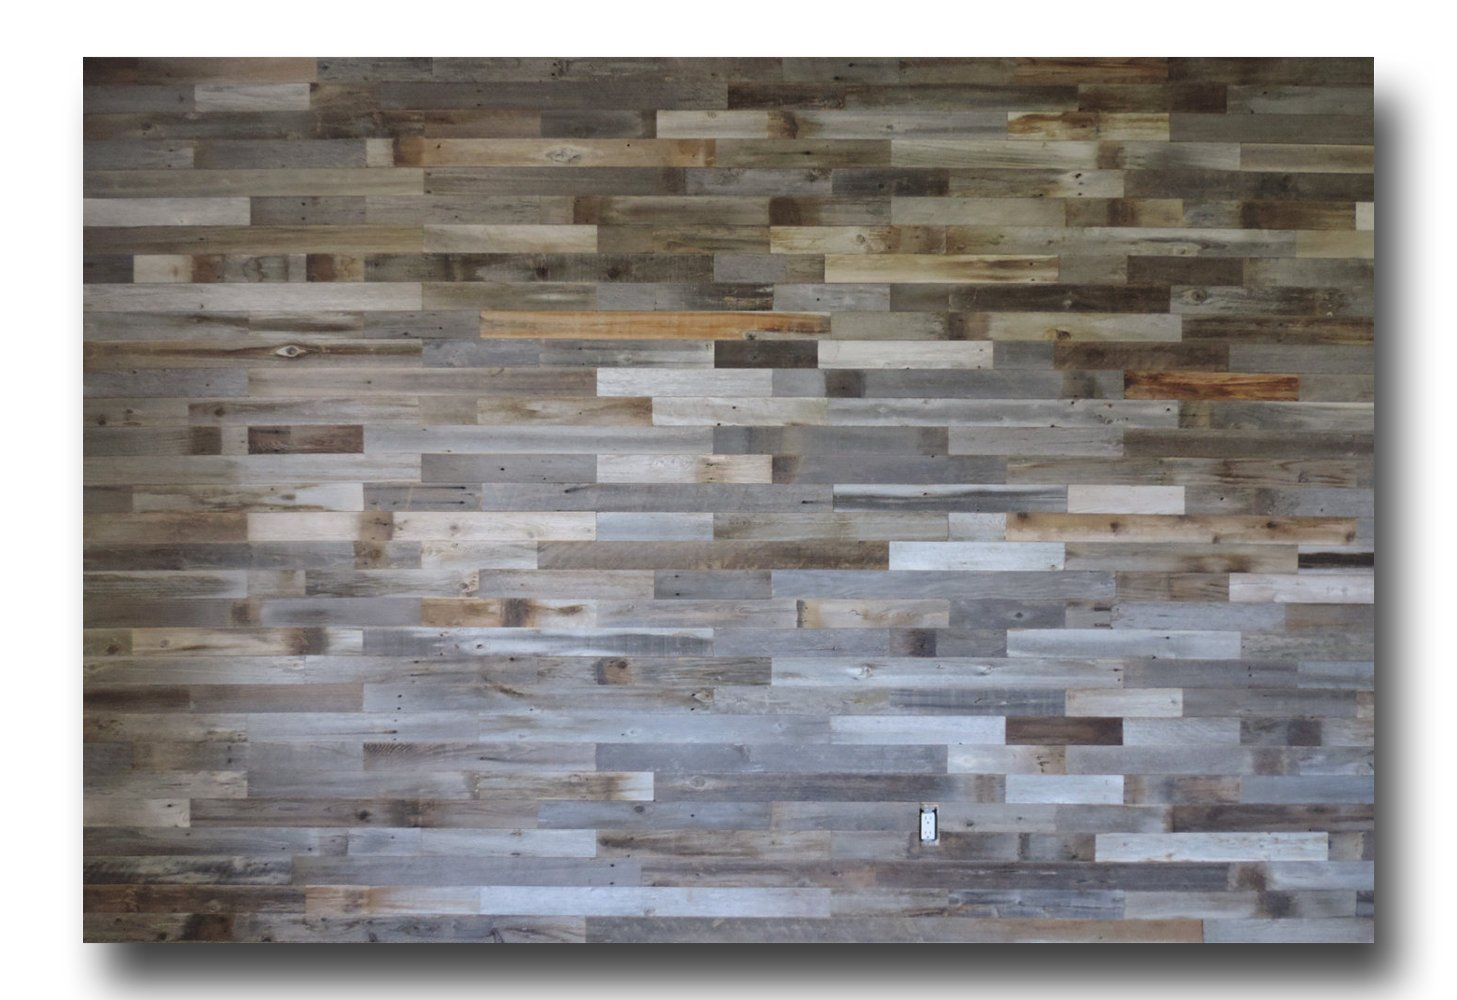 Barnwood reclaimed wood wall paneling craft wood authentic weathered wood wall covering flooring rustic wood amazon co uk diy tools